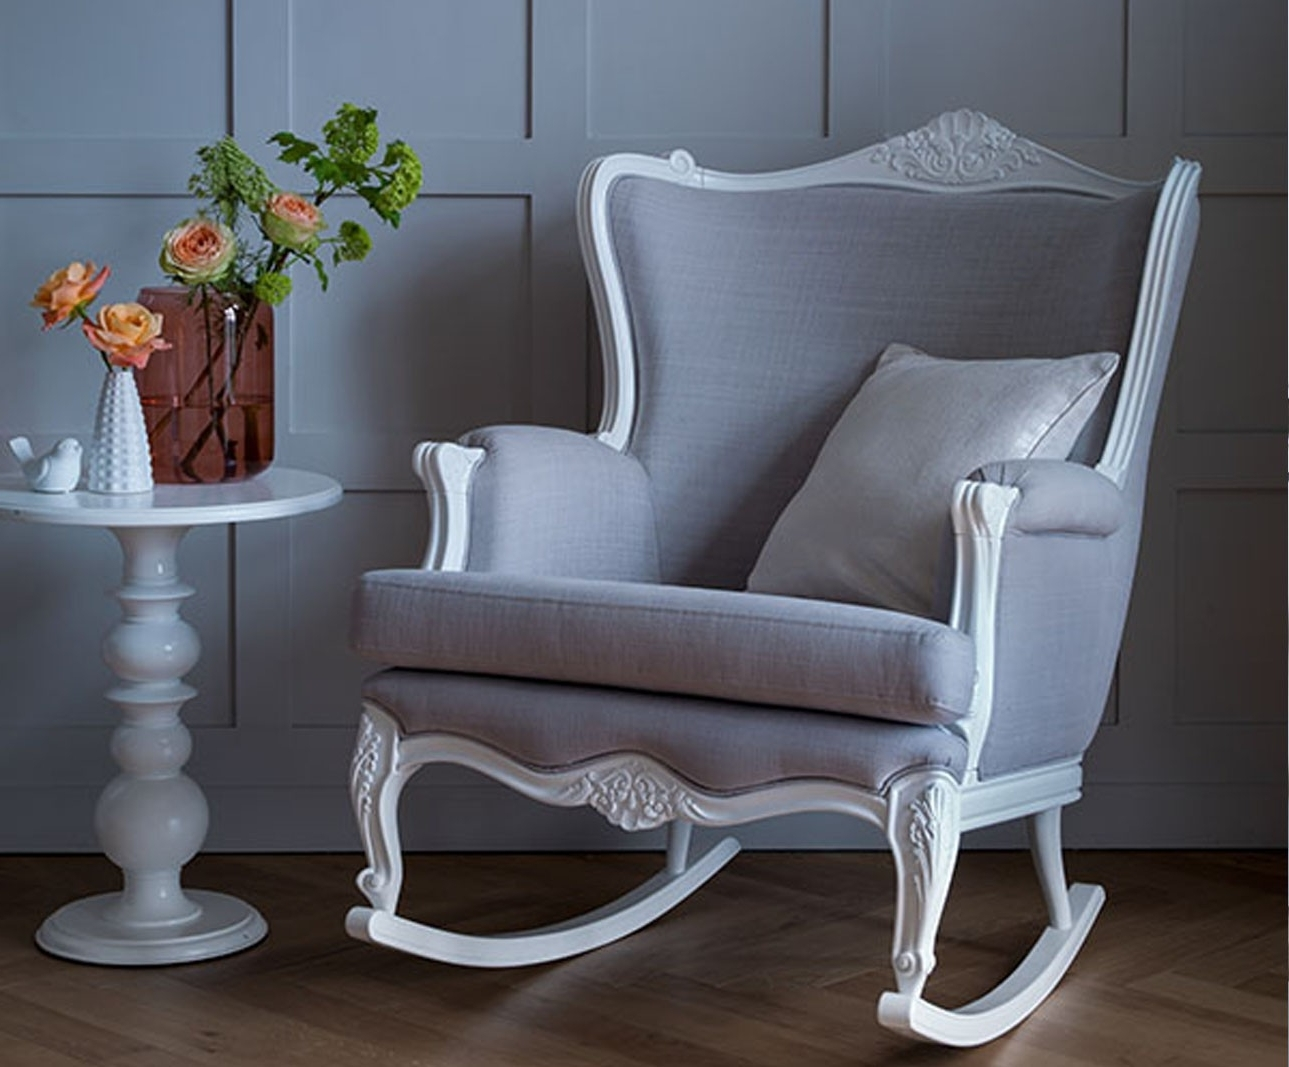 Most Recent Rocking Chairs For Nursing With Luxury Nursing Rocking Chair — All Modern Rocking Chairs : Good And (View 3 of 15)